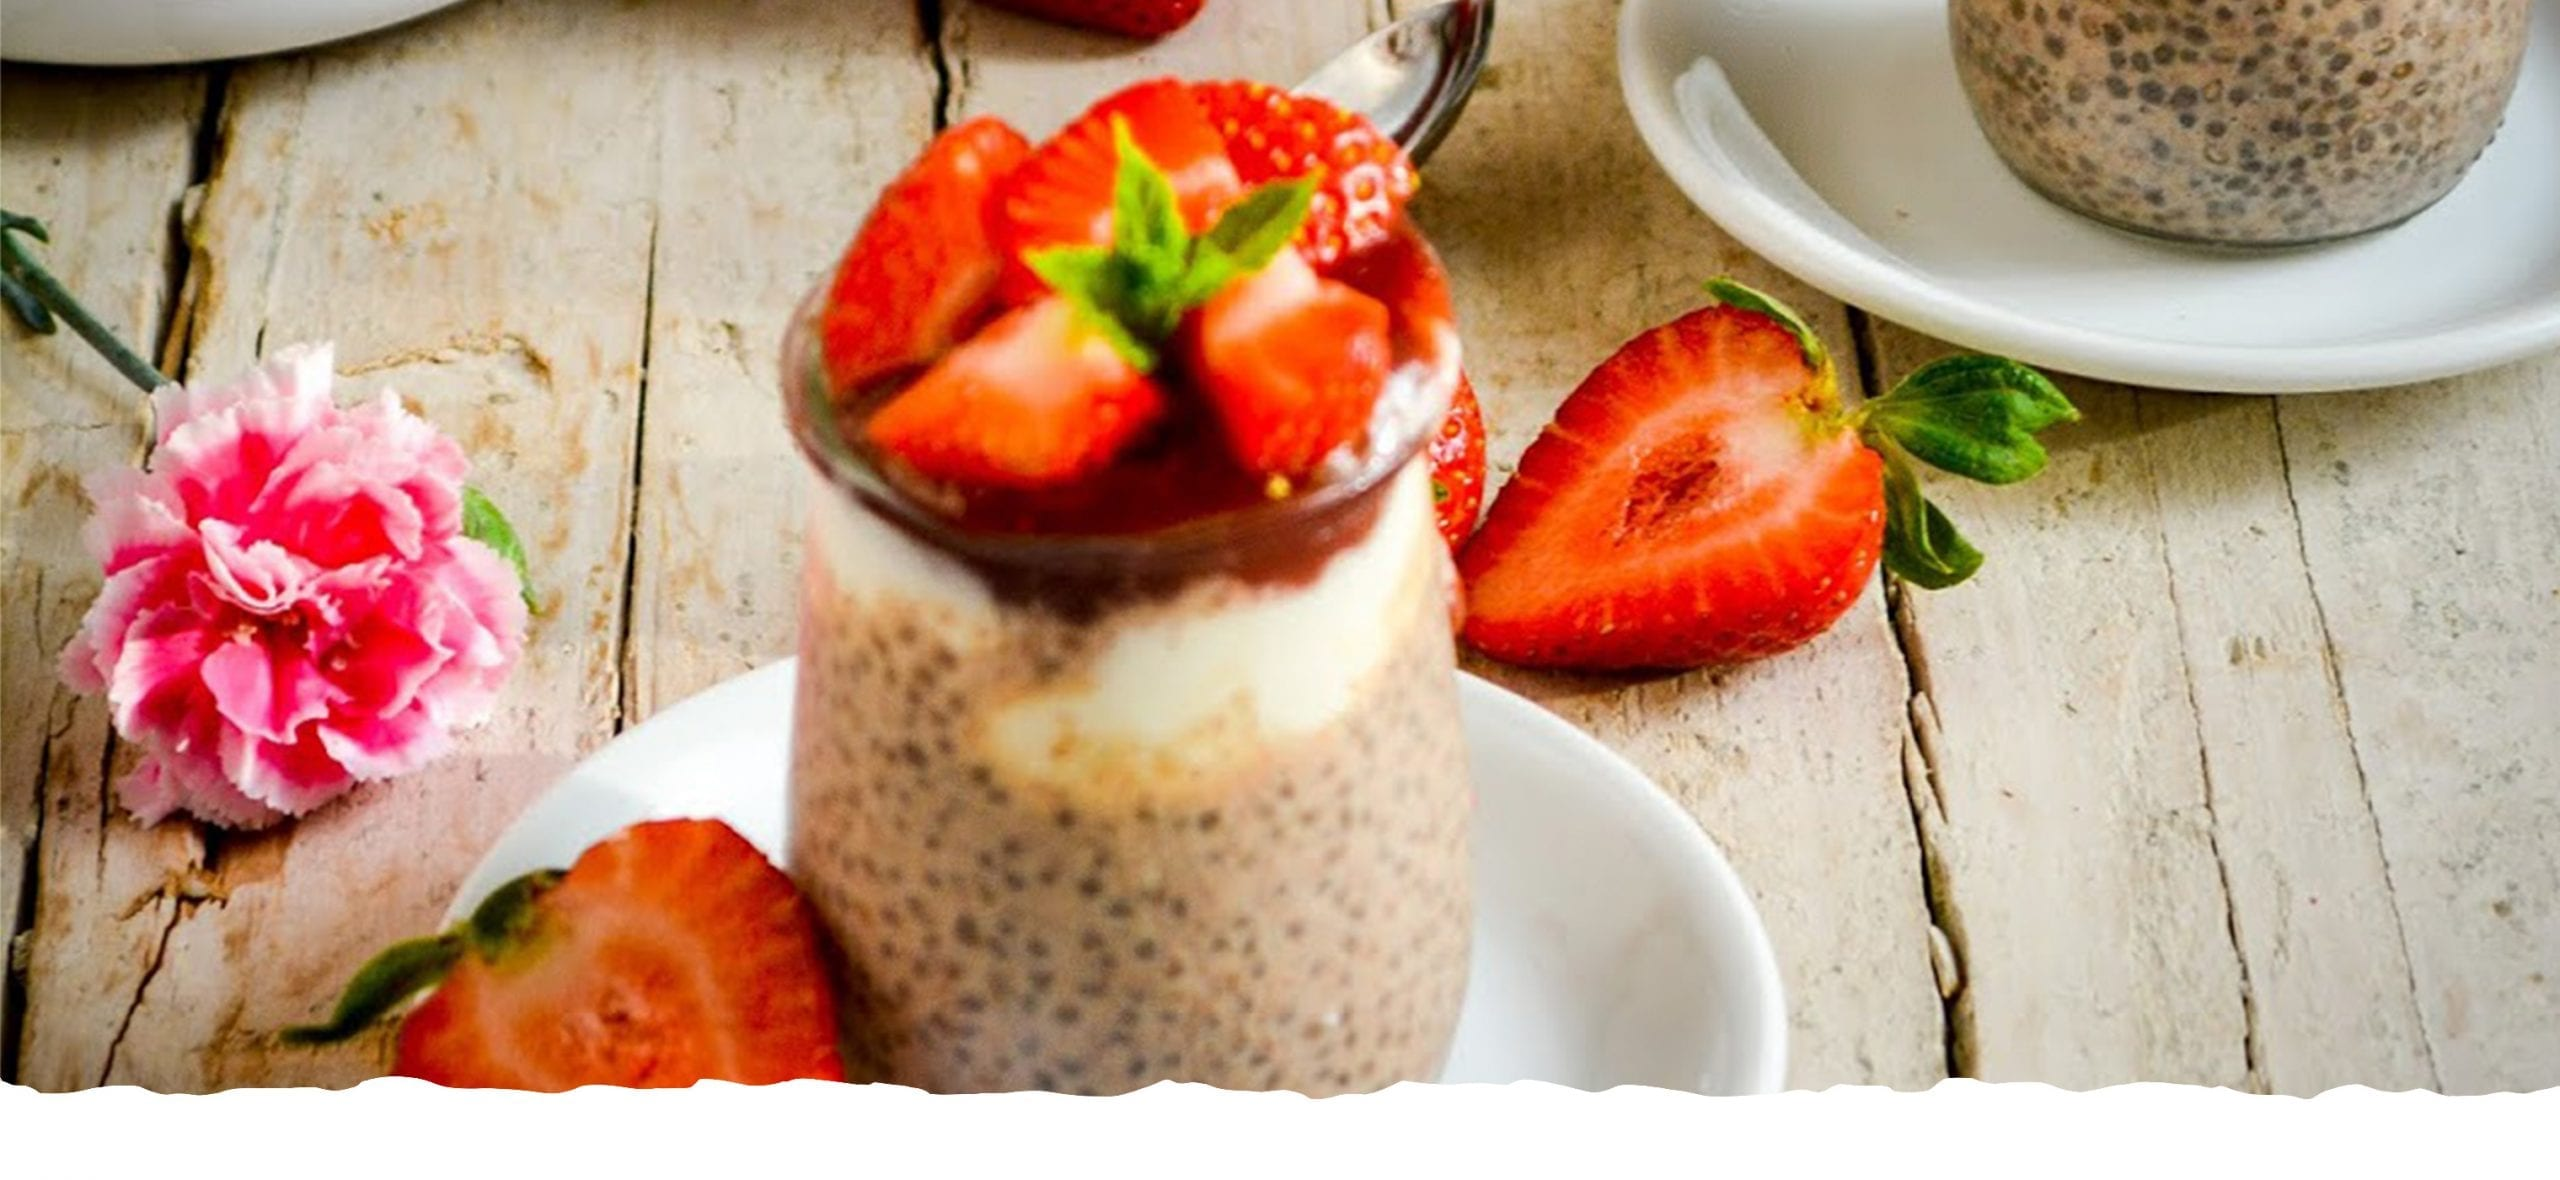 Chia, Cinnamon and Strawberry Pudding